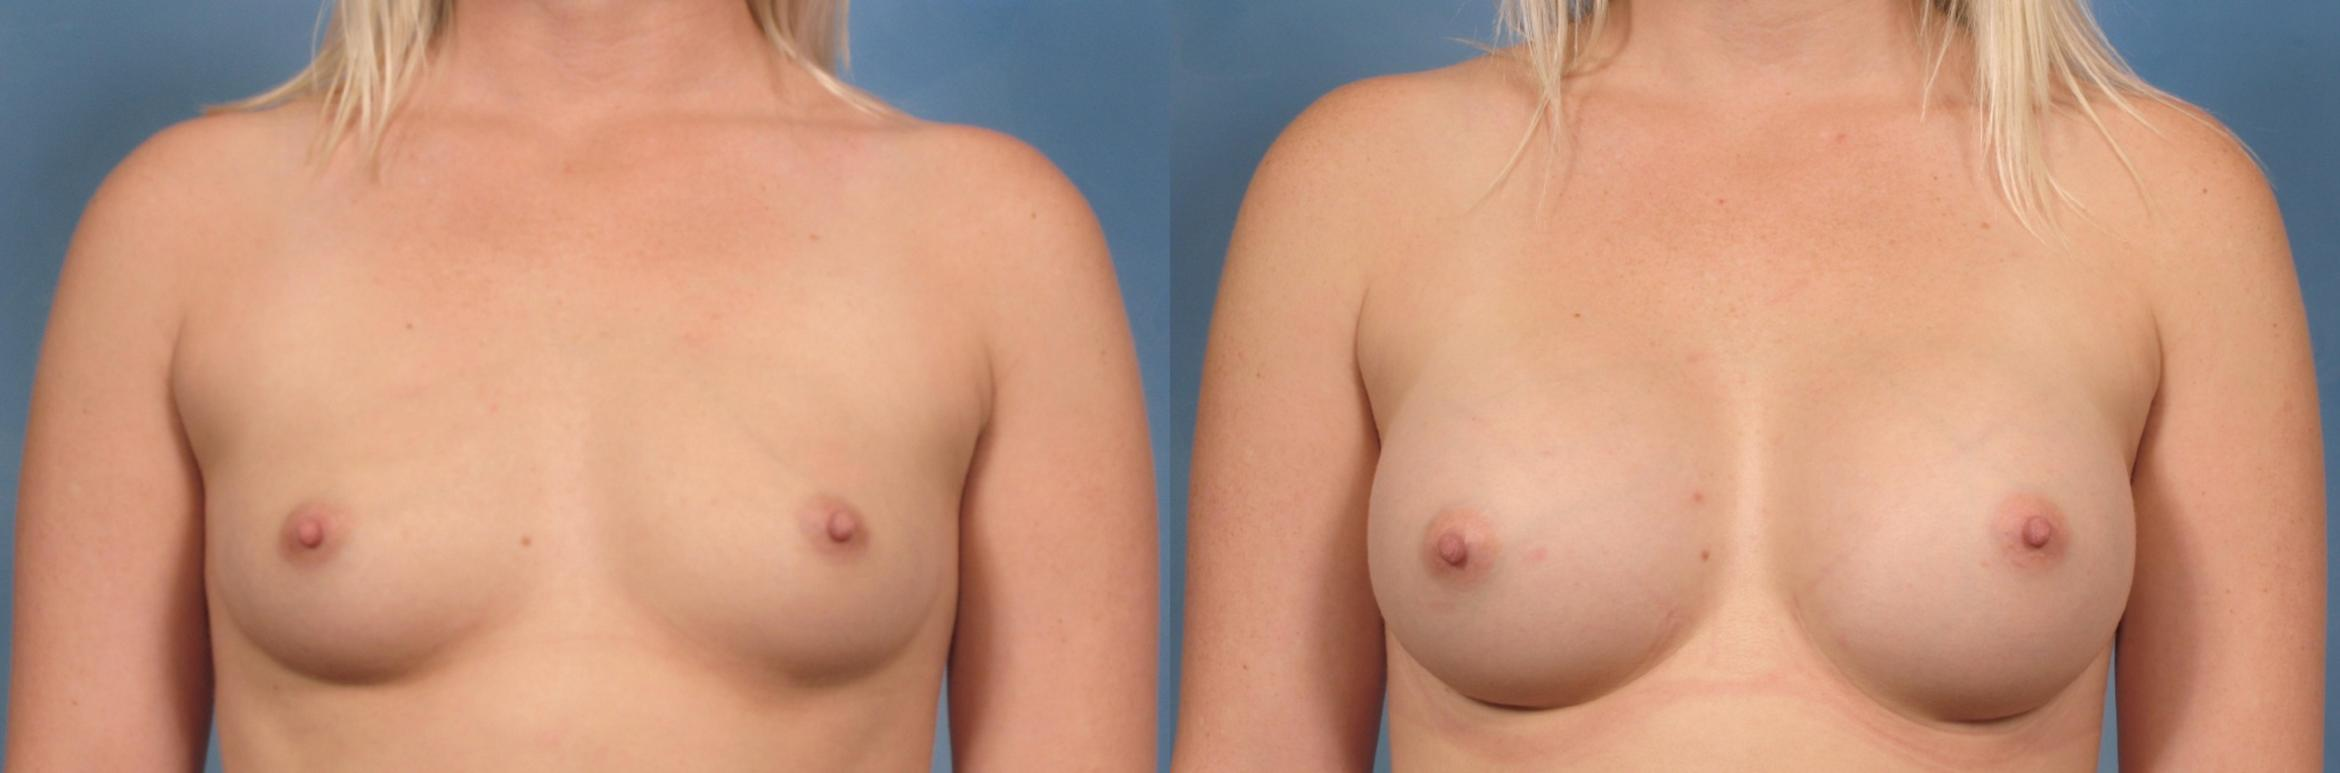 Breast Augmentation Case 121 Before & After View #1 | Naples, FL | Kent V. Hasen, M.D.